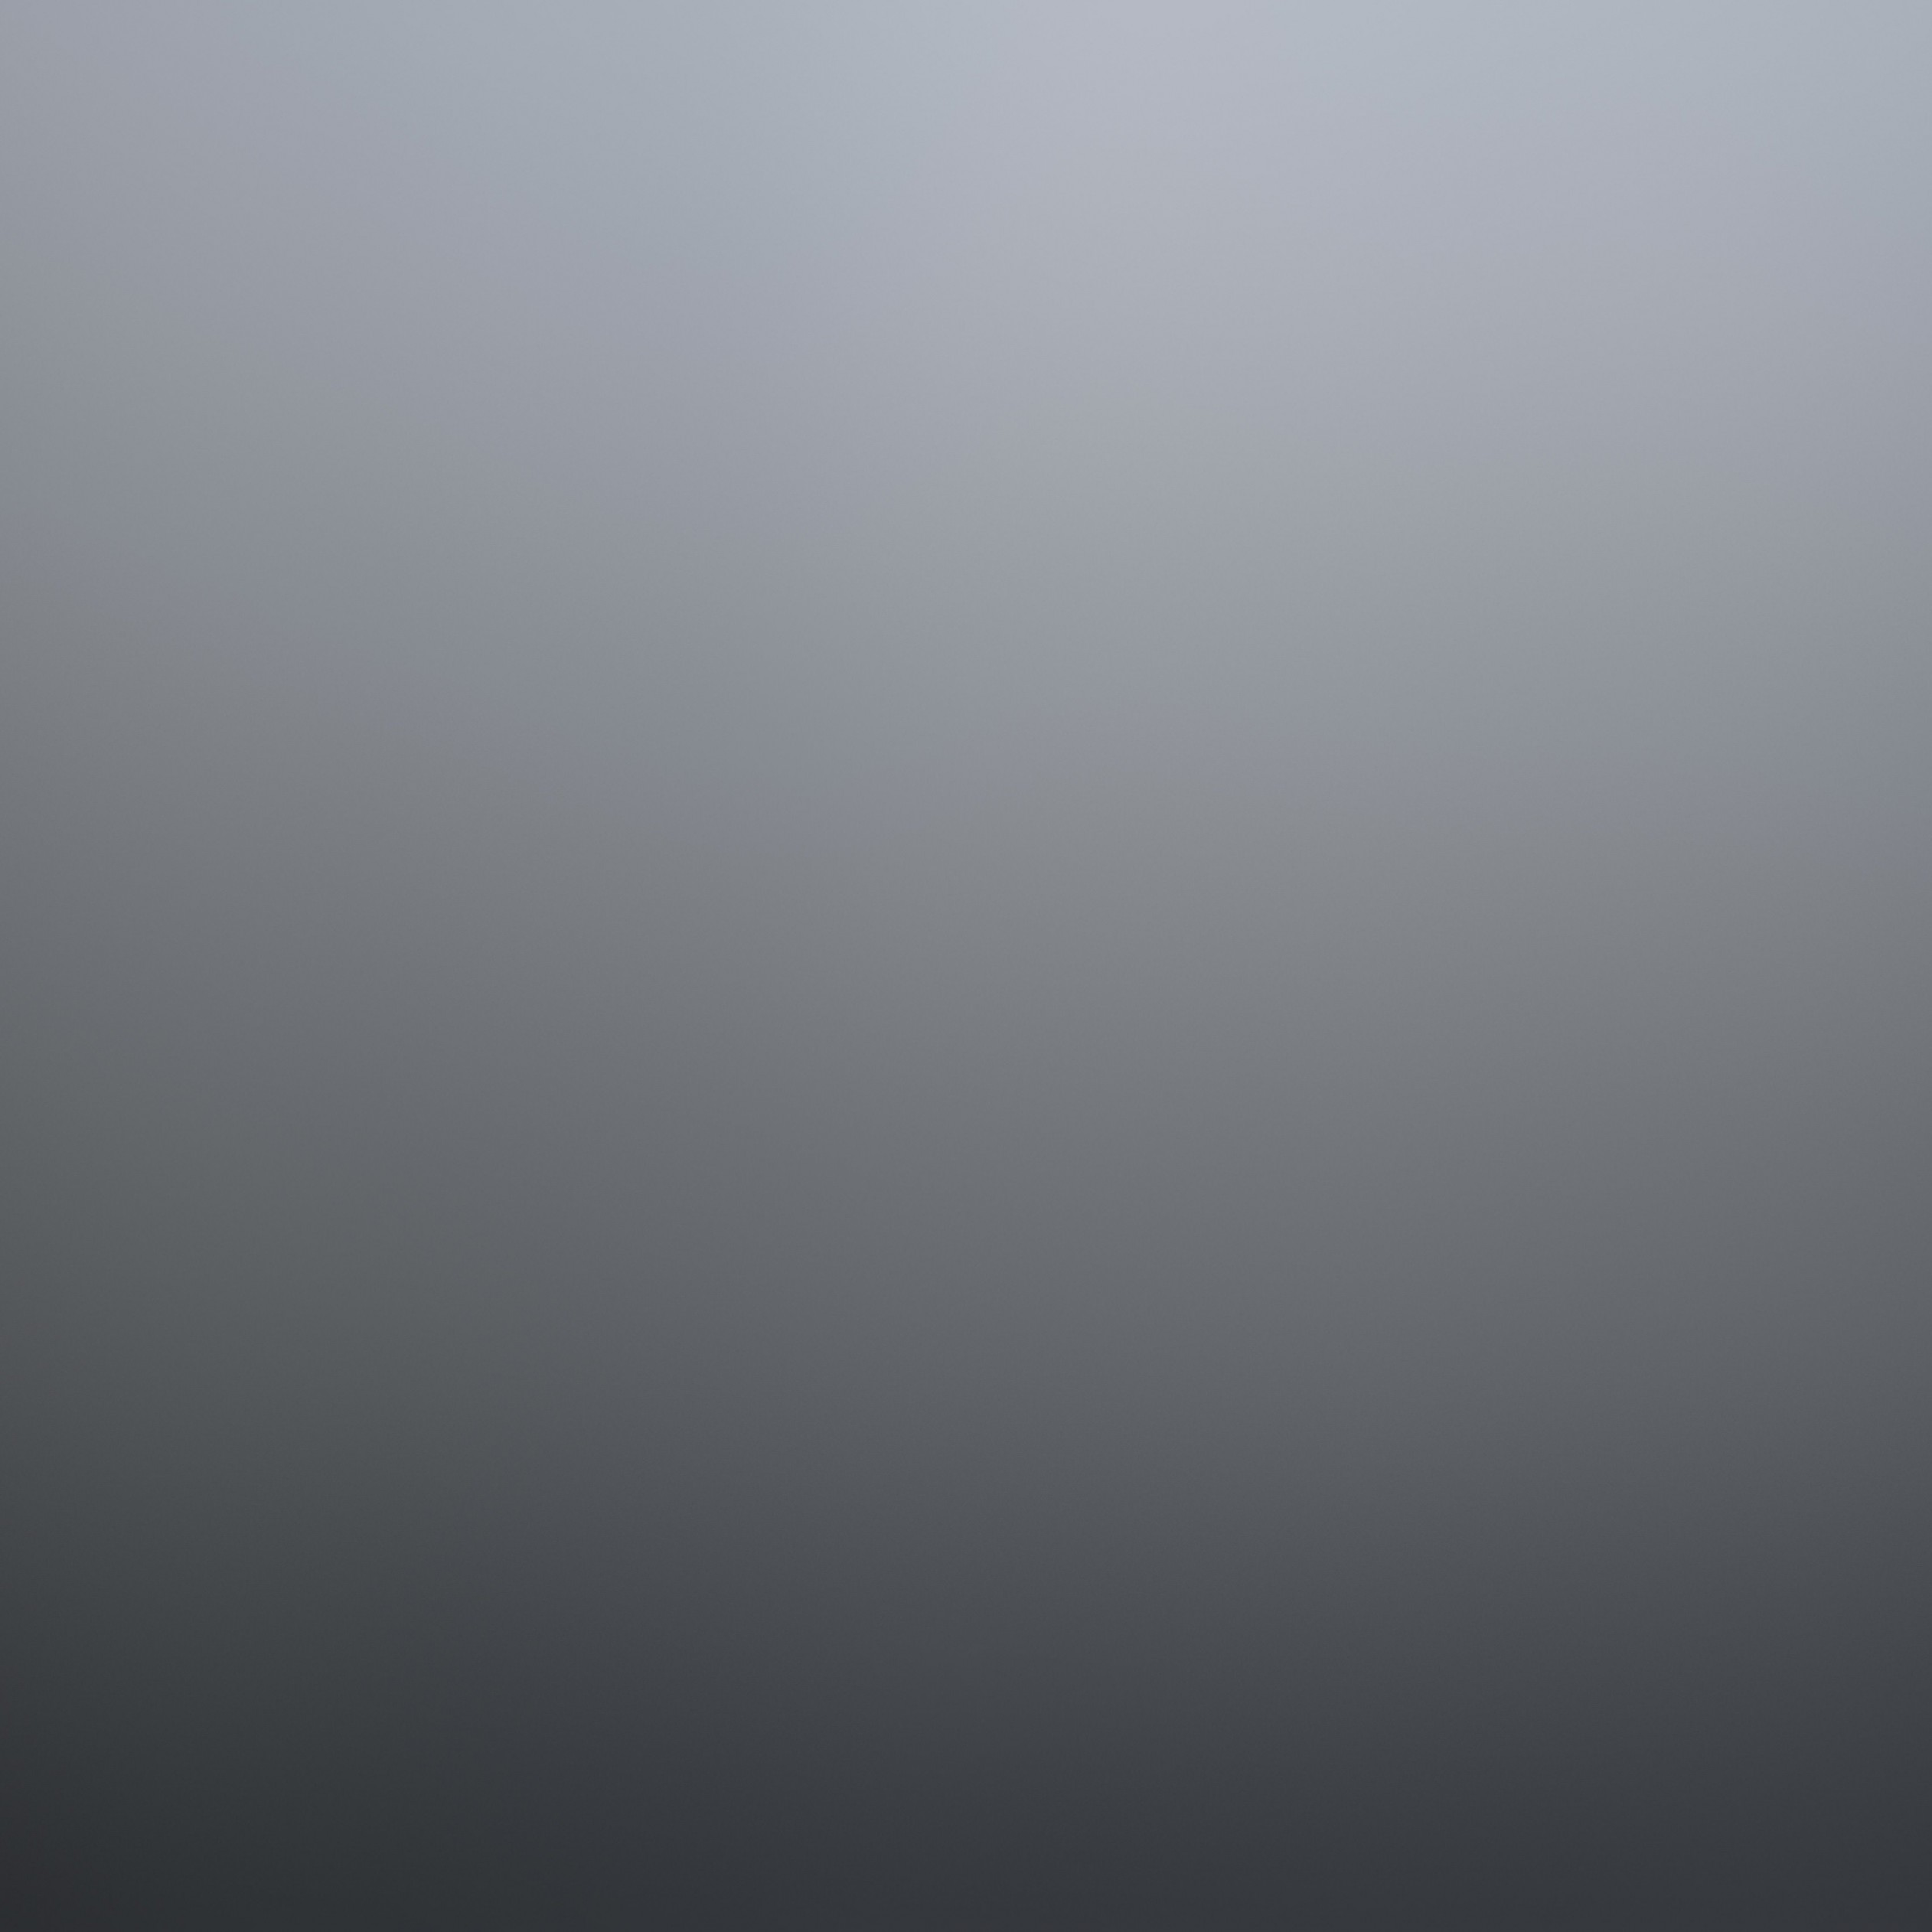 Gradient Grey Wallpaper for Apple iPad 3